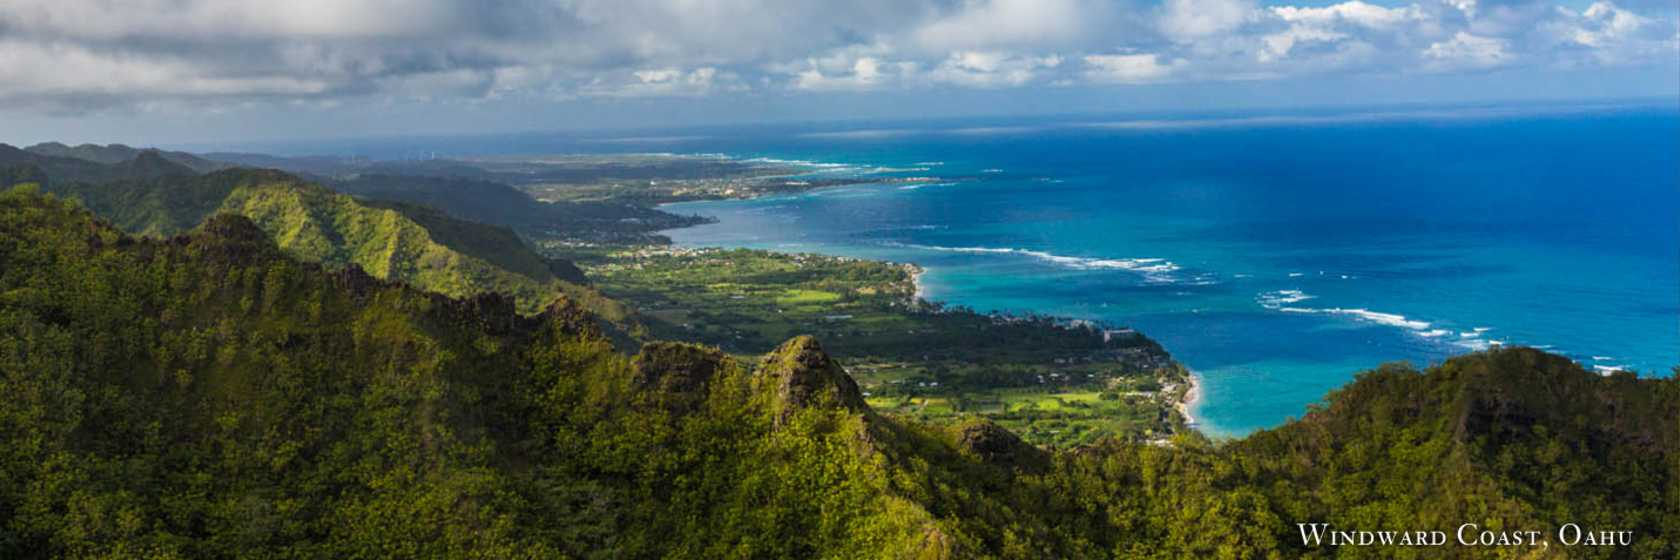 Windward Coast Oahu